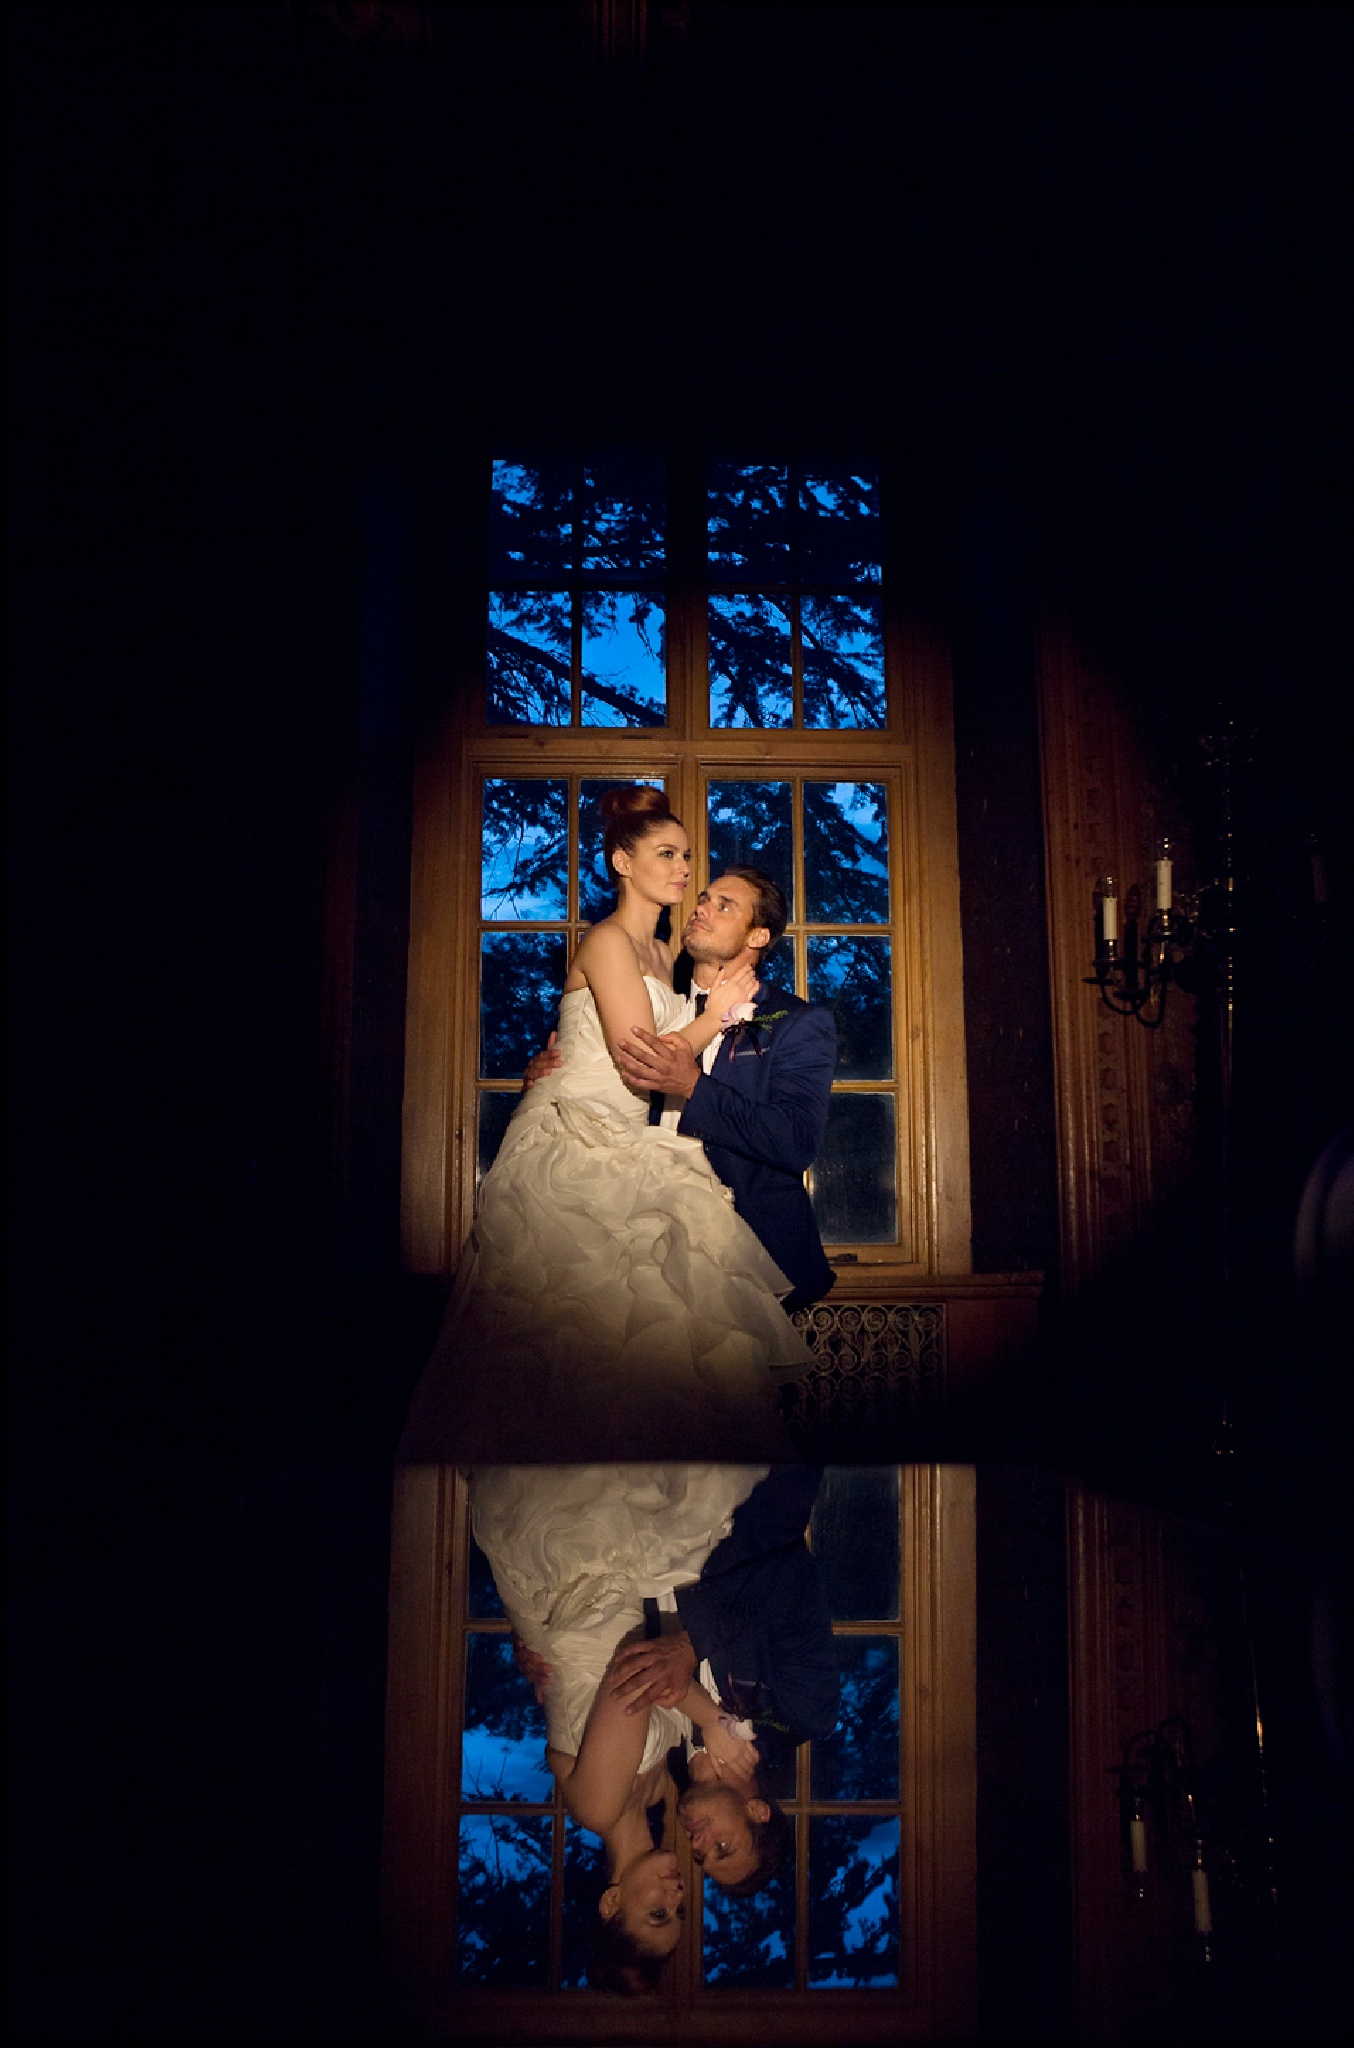 wedding photographer - Doville Gail Photography by doville